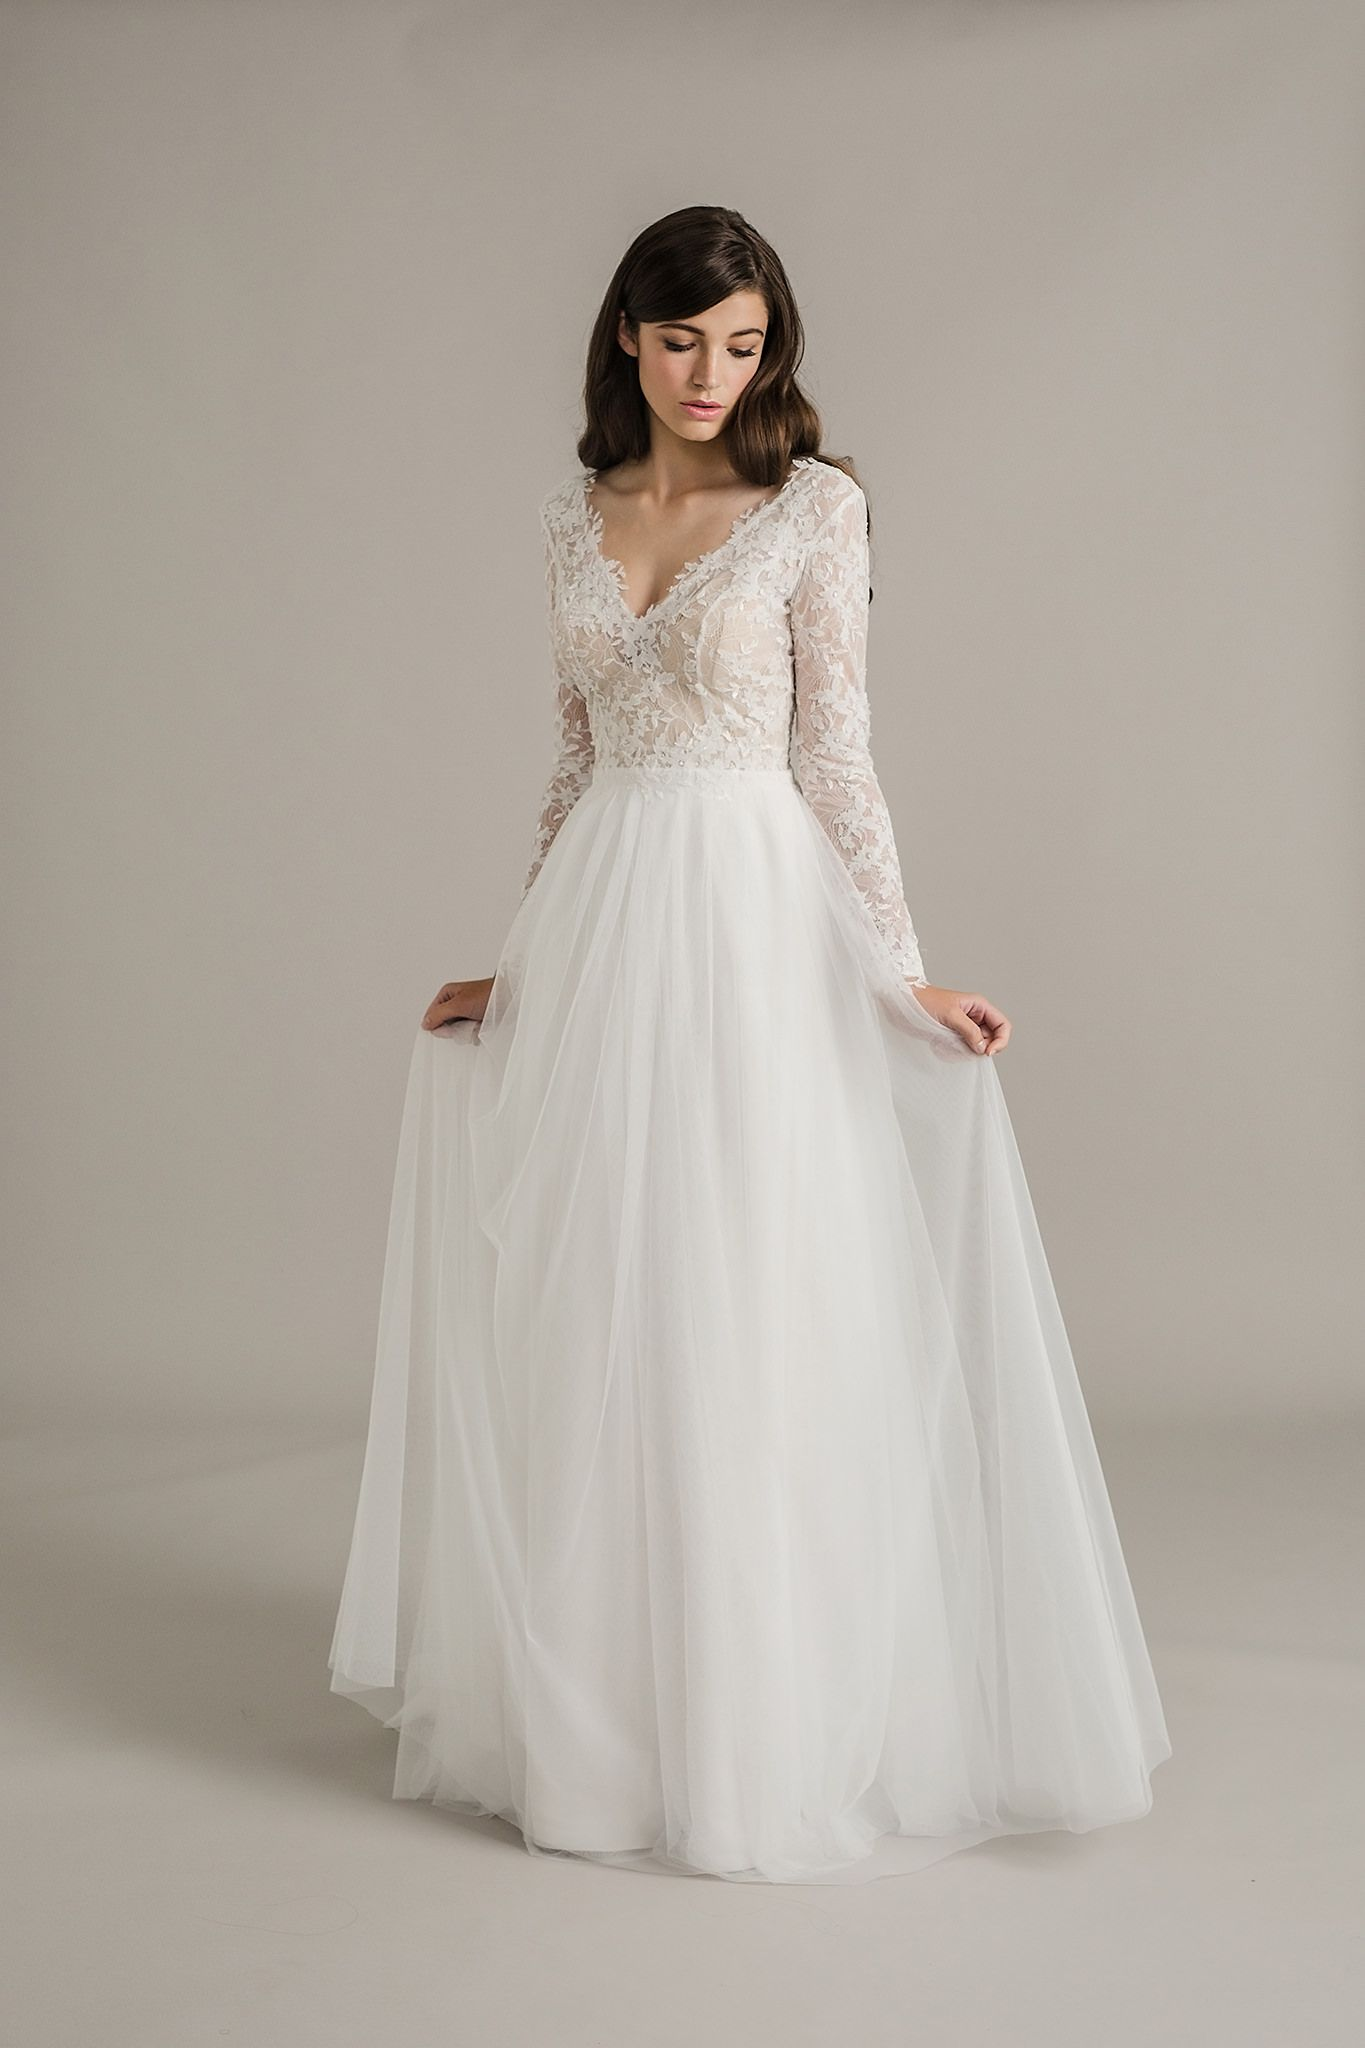 Lace arm wedding dress  Sally Eagle Wedding Dress Collection  Dusk  Sally Lace